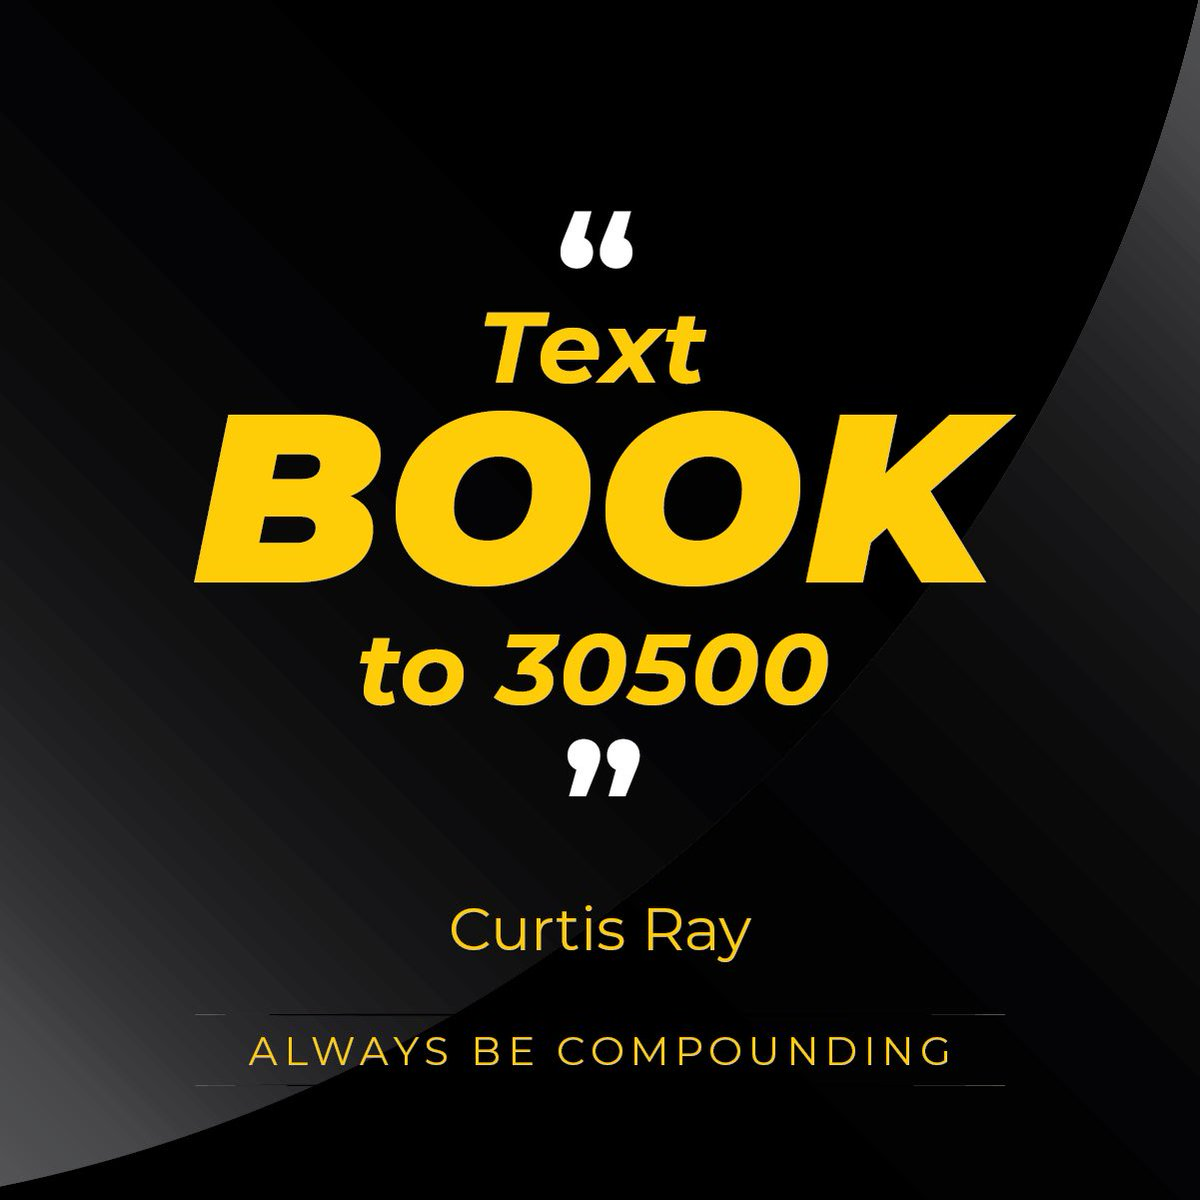 Over the last few months I've given my book away to 10,000+ people. I wanted to make sure you get your copy too, enjoy the read! #MPI #book #curtisray #money #retirement #401k #StockMarket